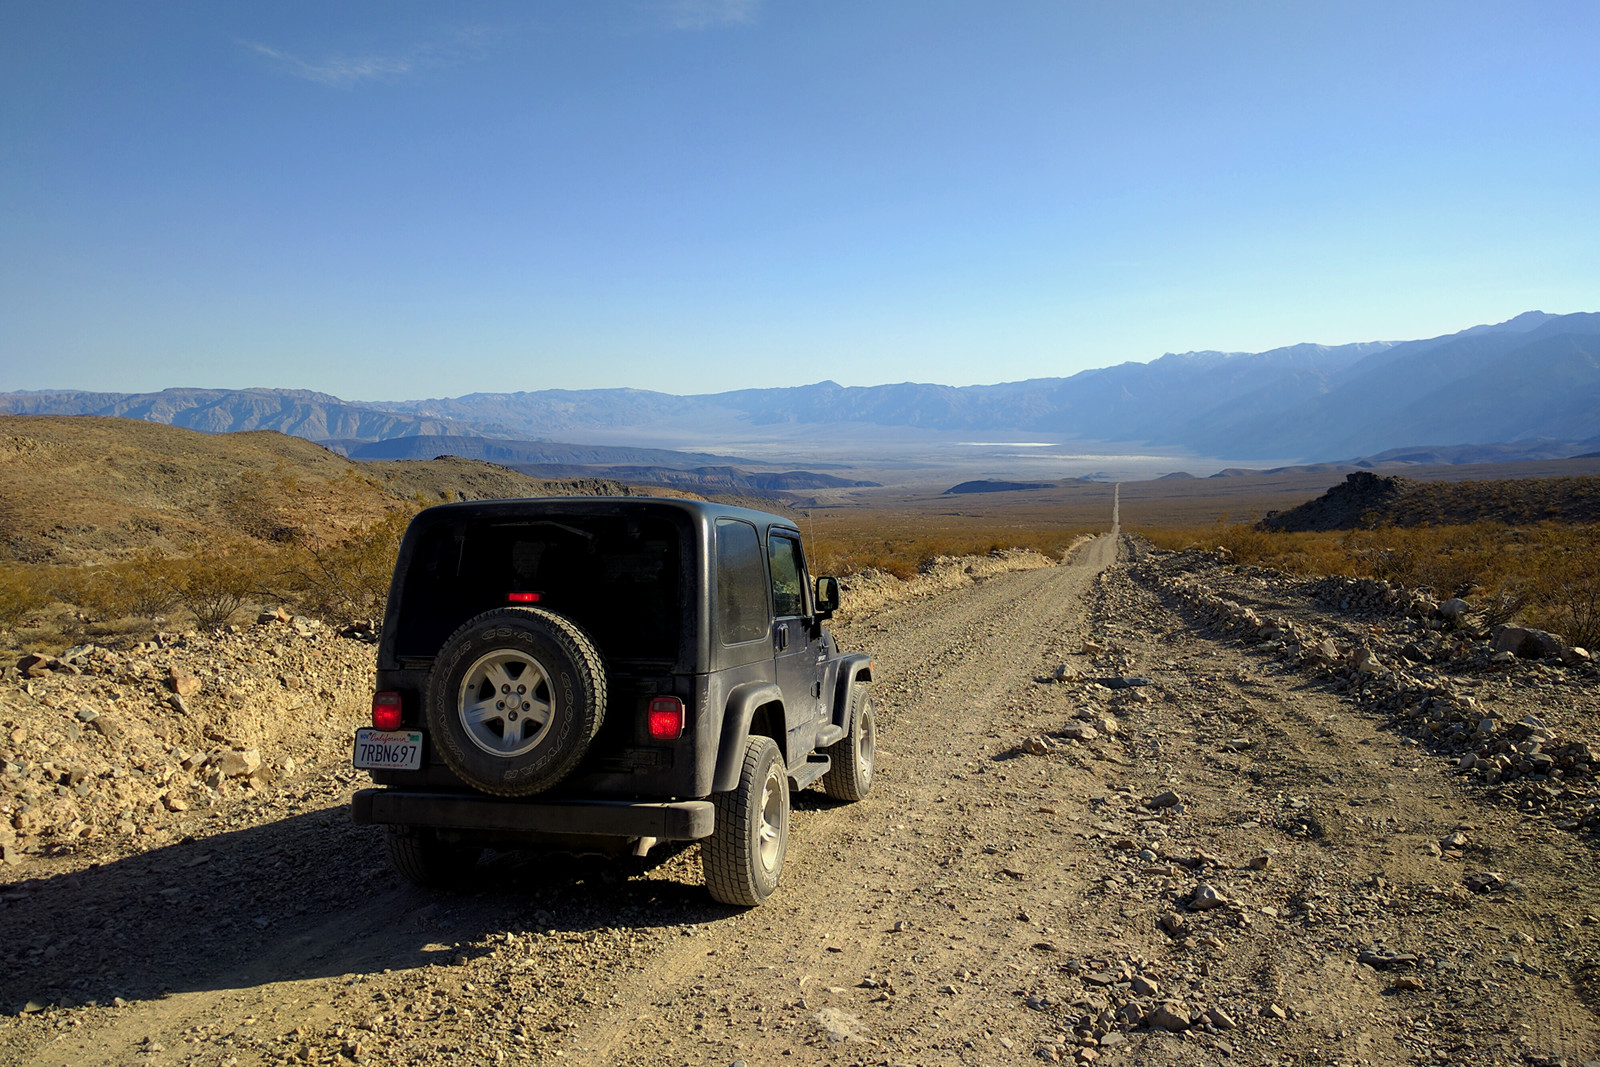 La Jeep on Saline Road, heading to Warm Springs in Death Valley National Park